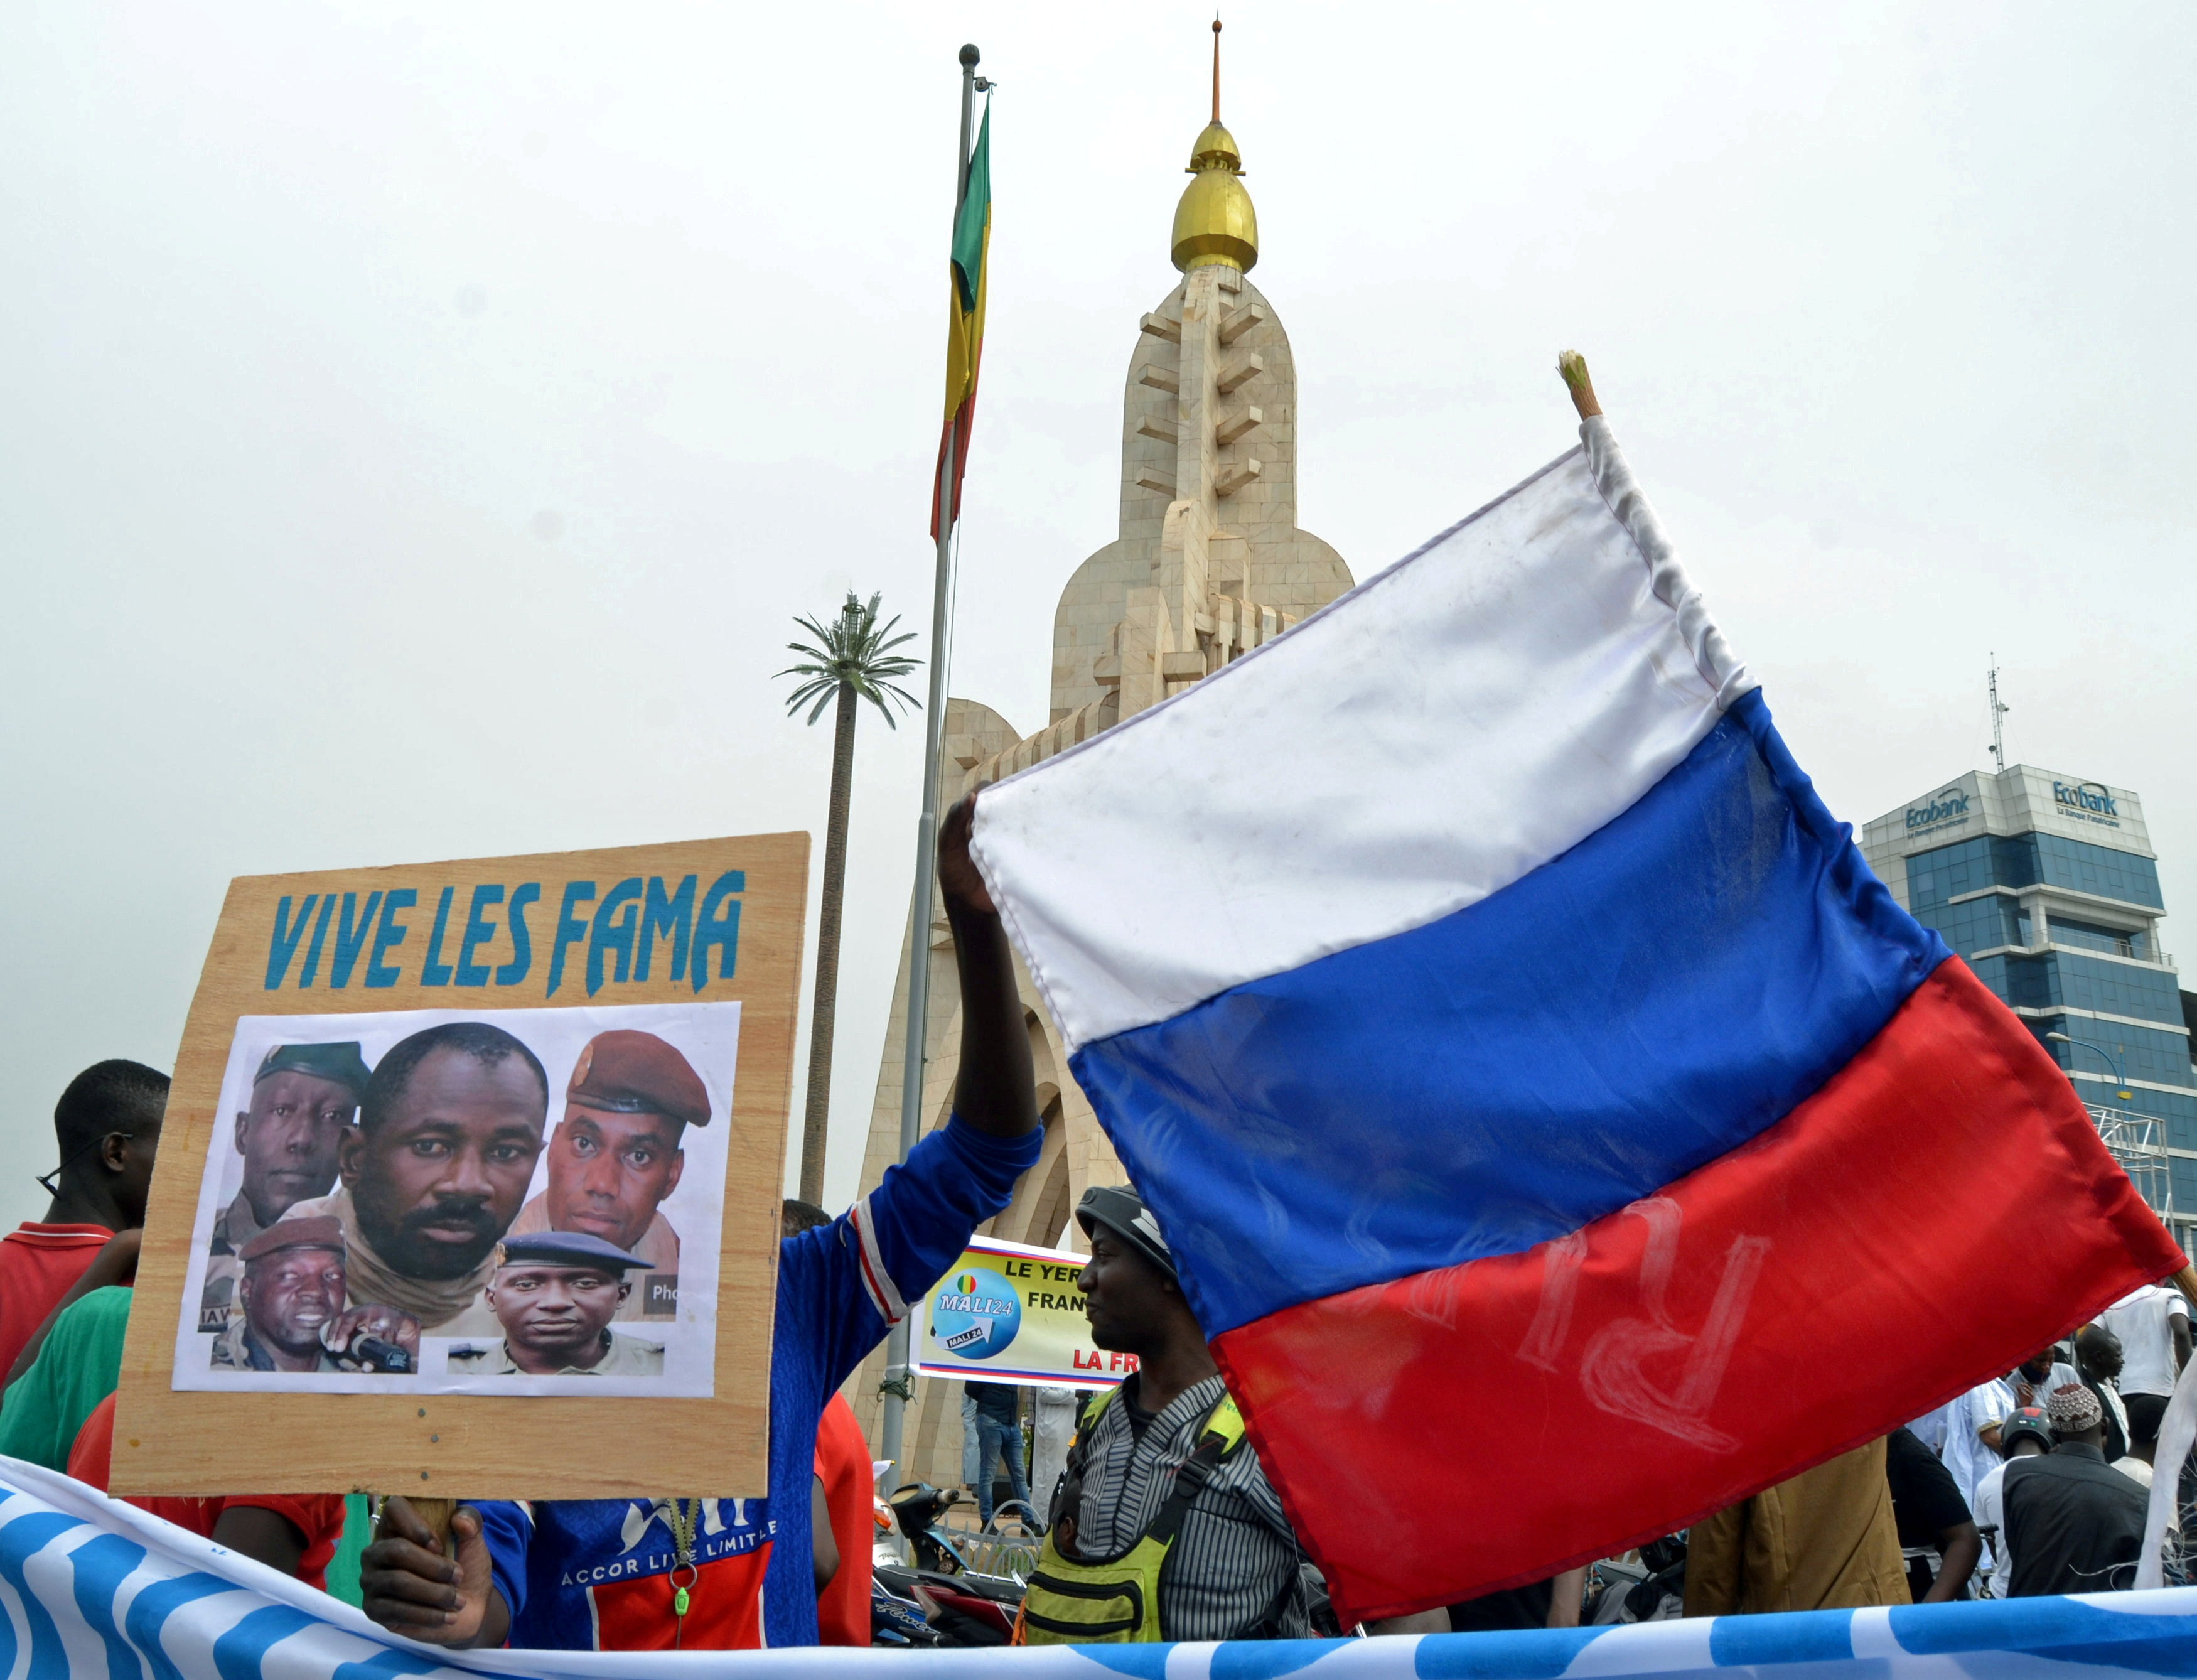 Malians hold a photograph with an image of Colonel Assimi Goita, leader of Mali's military junta, and Russia's flag during a pro-Malian Armed Forces (FAMA)  demonstration in Bamako, Mali, May 28, 2021. REUTERS/ Amadou Keita/File Photo